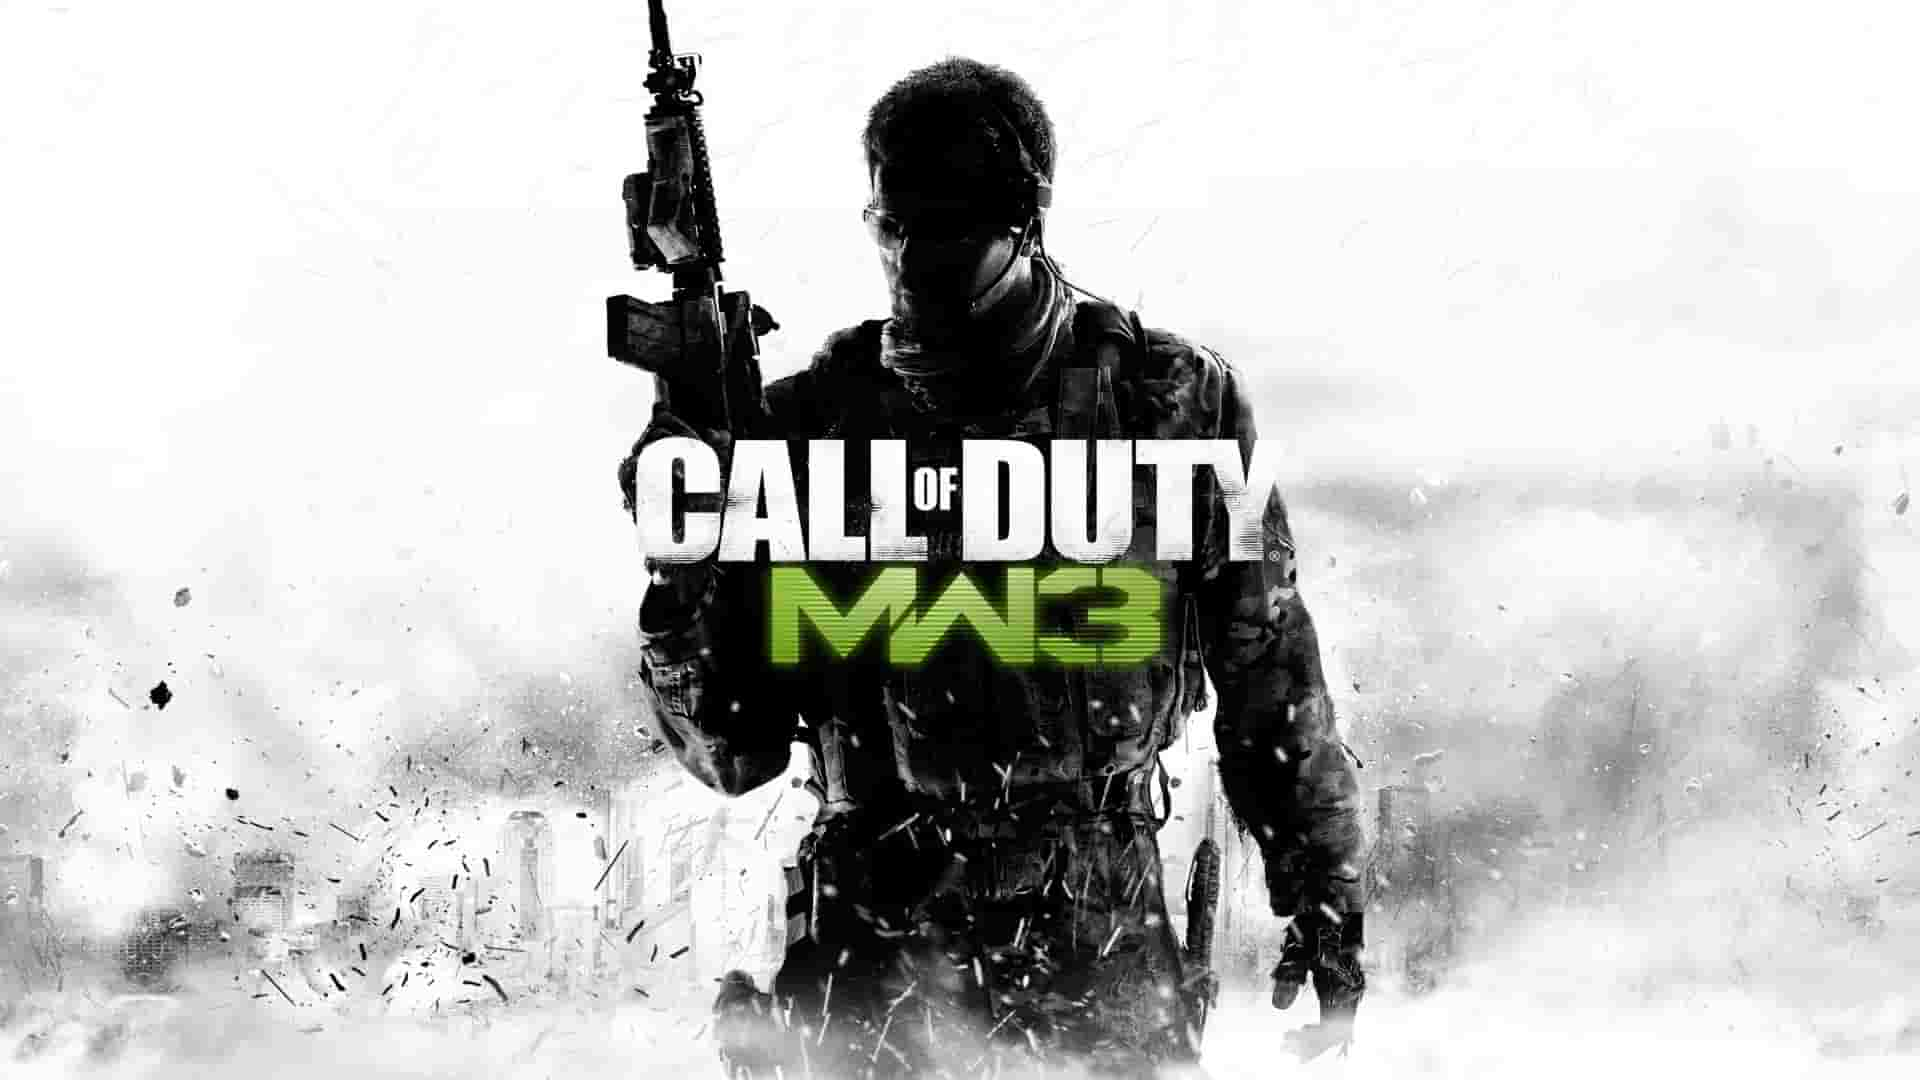 Call Of Duty Mw3 Remastered Campaign On Its Way Leaker Claims